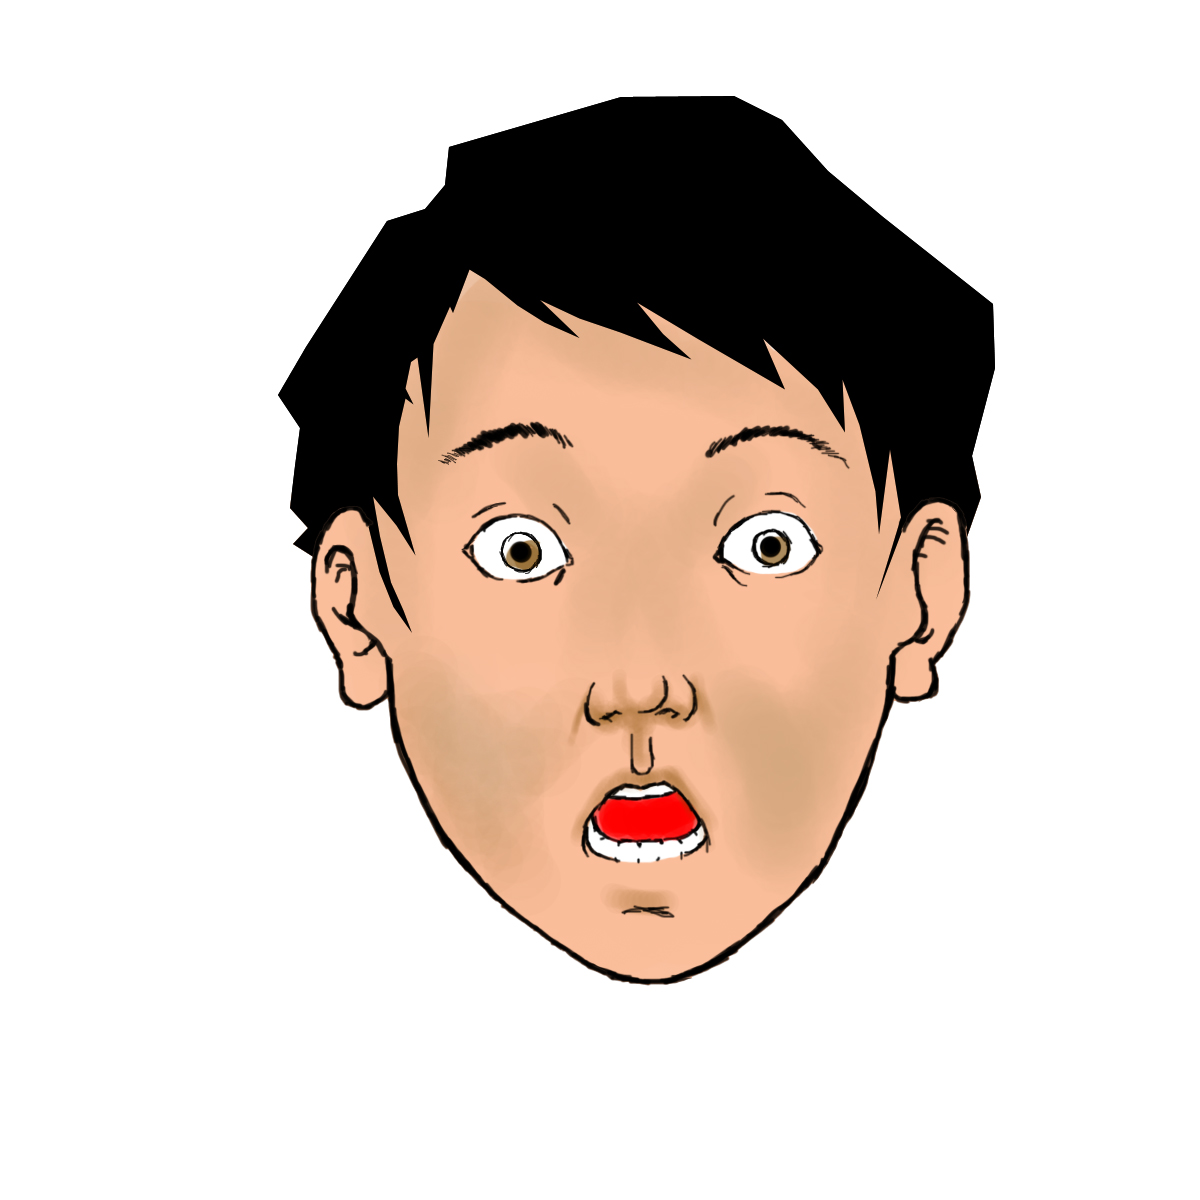 Surprised-face-color-Step-11.jpg